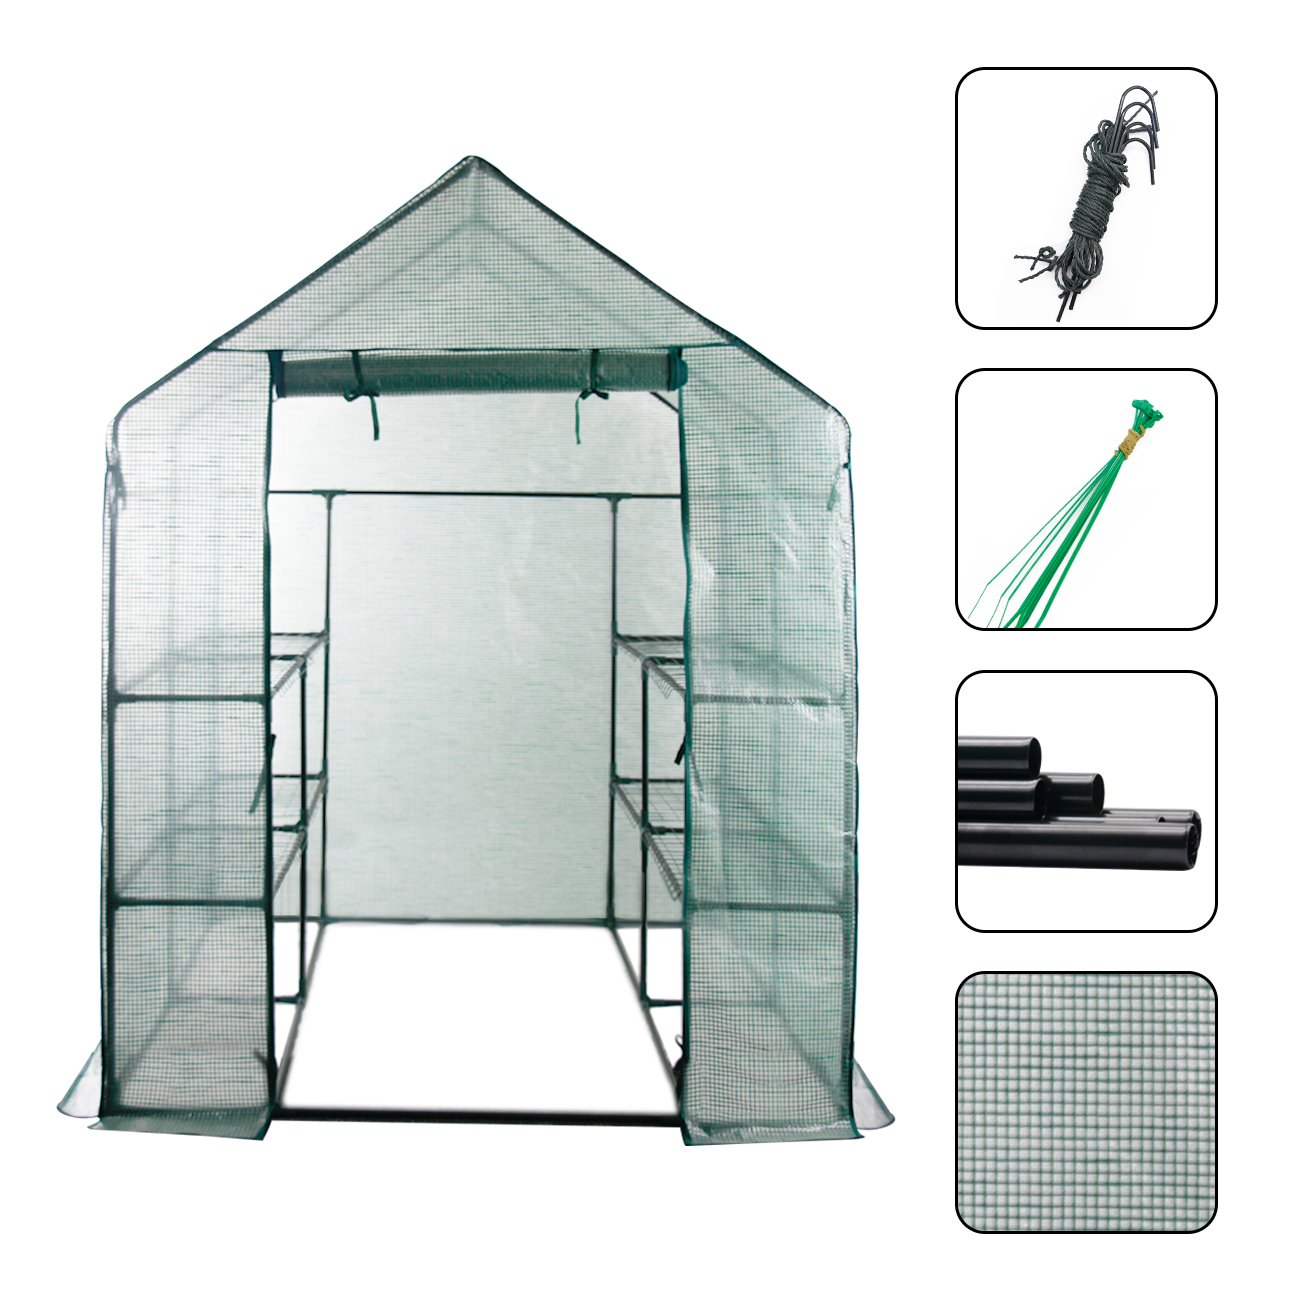 AODAILIHB Reinforced PE Net 6 Layers 8 Shelves Greenhouse Suitable for Lawn and Garden Steel Structure Assembly, 8 Fixed Buttons 4 Floor Fasteners, H x L x W:76.77 x 56.29 x 56.29 inch (02) by AODAILIHB (Image #2)